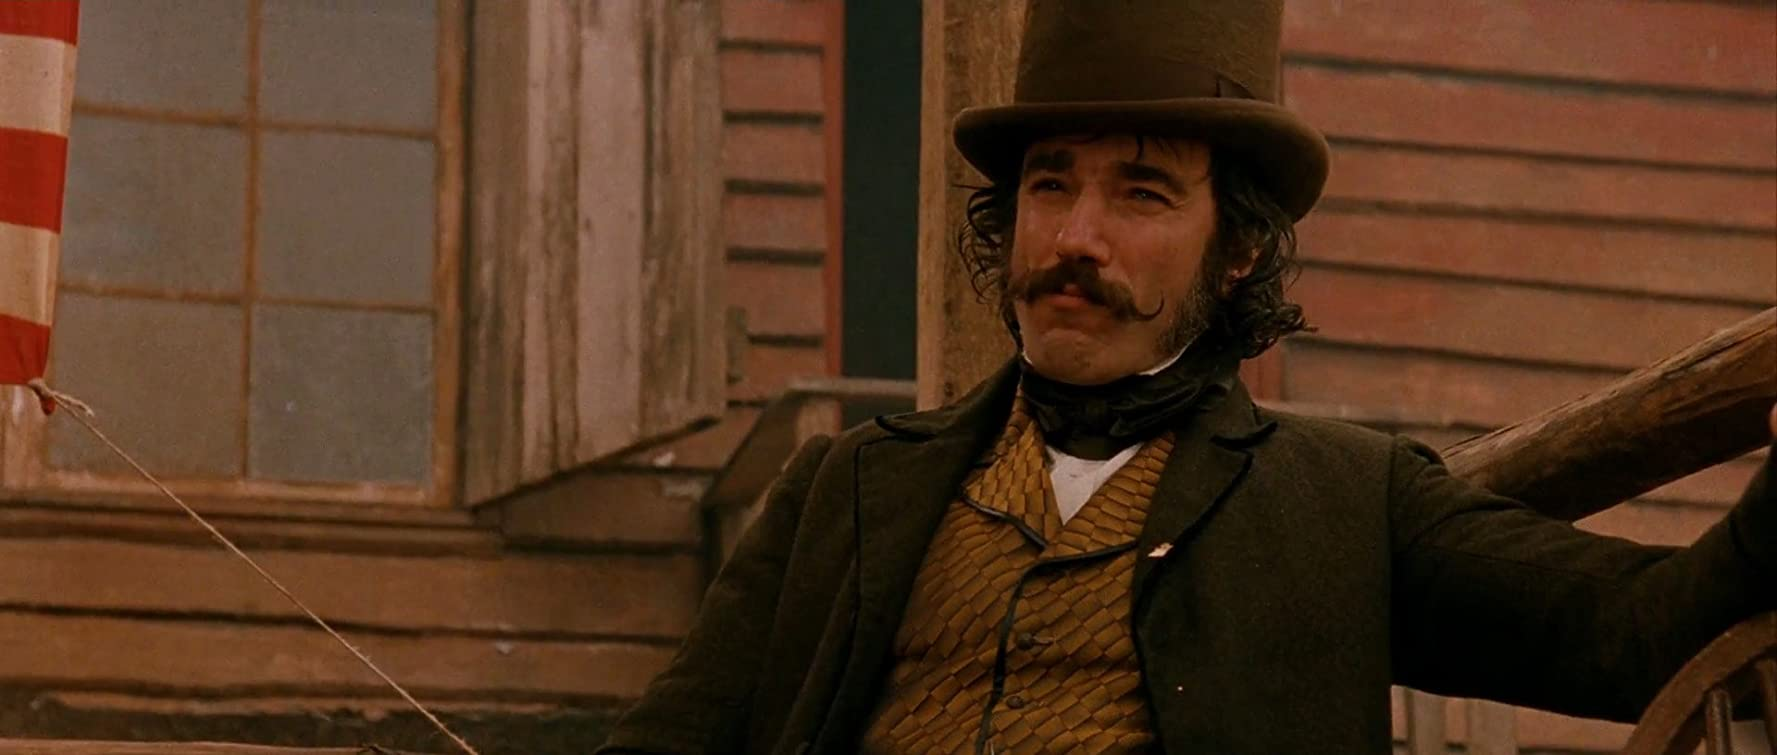 Daniel Day-Lewis a New York-i bandákban (2002)